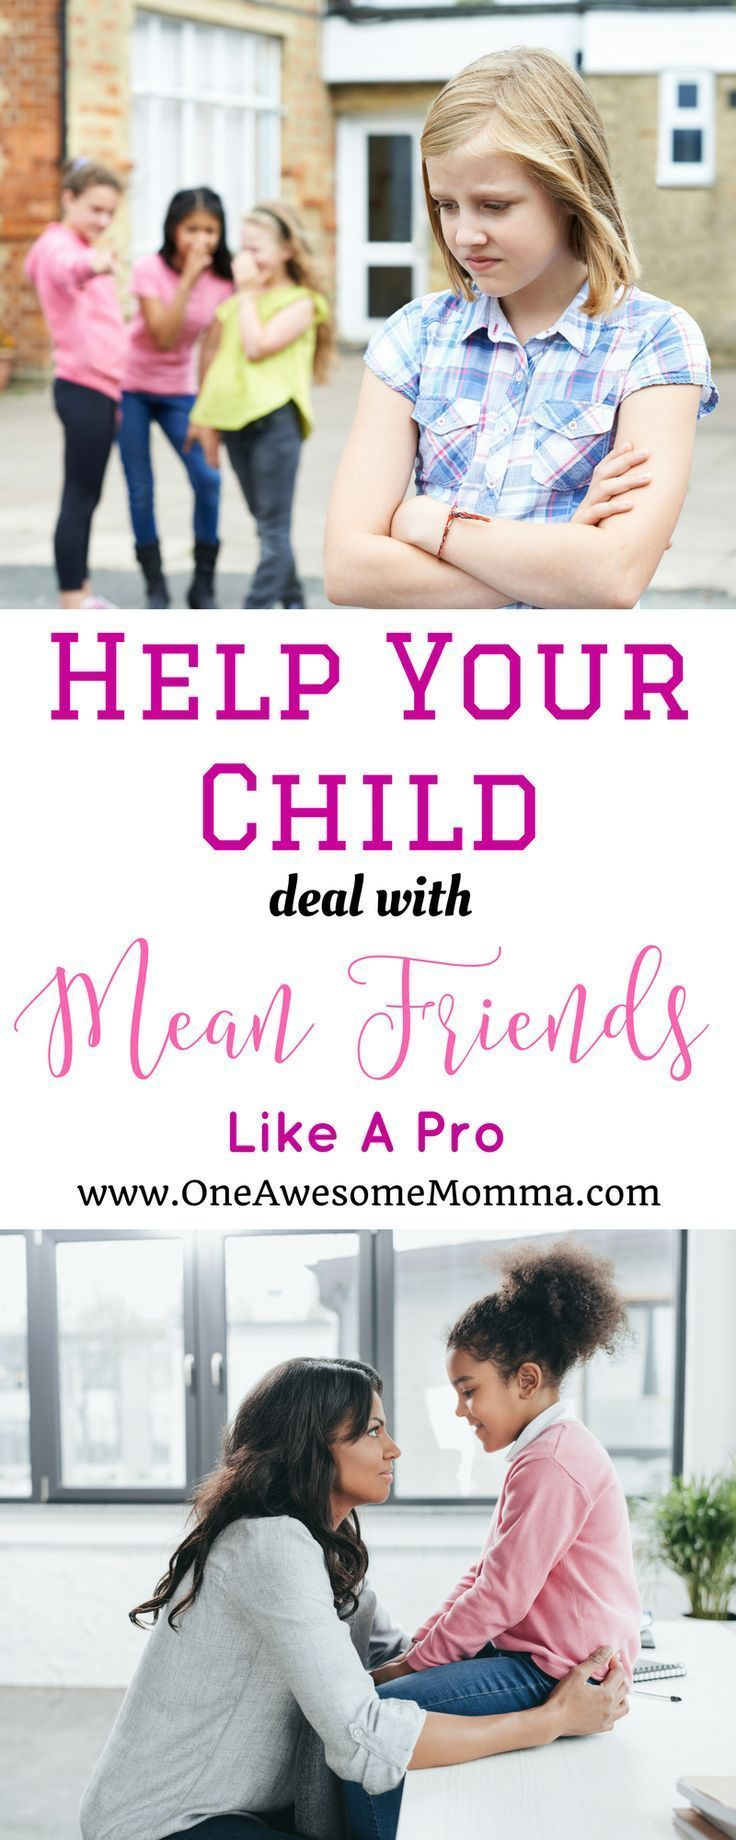 As a parent, one of our worries is what to do when someone is mean to your child. Find out how to help your child deal with mean friends like a pro. #motherhood #parenting | how to deal with mean friends | how to deal with mean people | how to deal with mean girls at school | how to deal with mean girls tips | teachable moments | mom problems | mom struggles | life lessons for kids | advice for kids | advice for kids life | advice for kids children | mean kids how to deal | mean kids